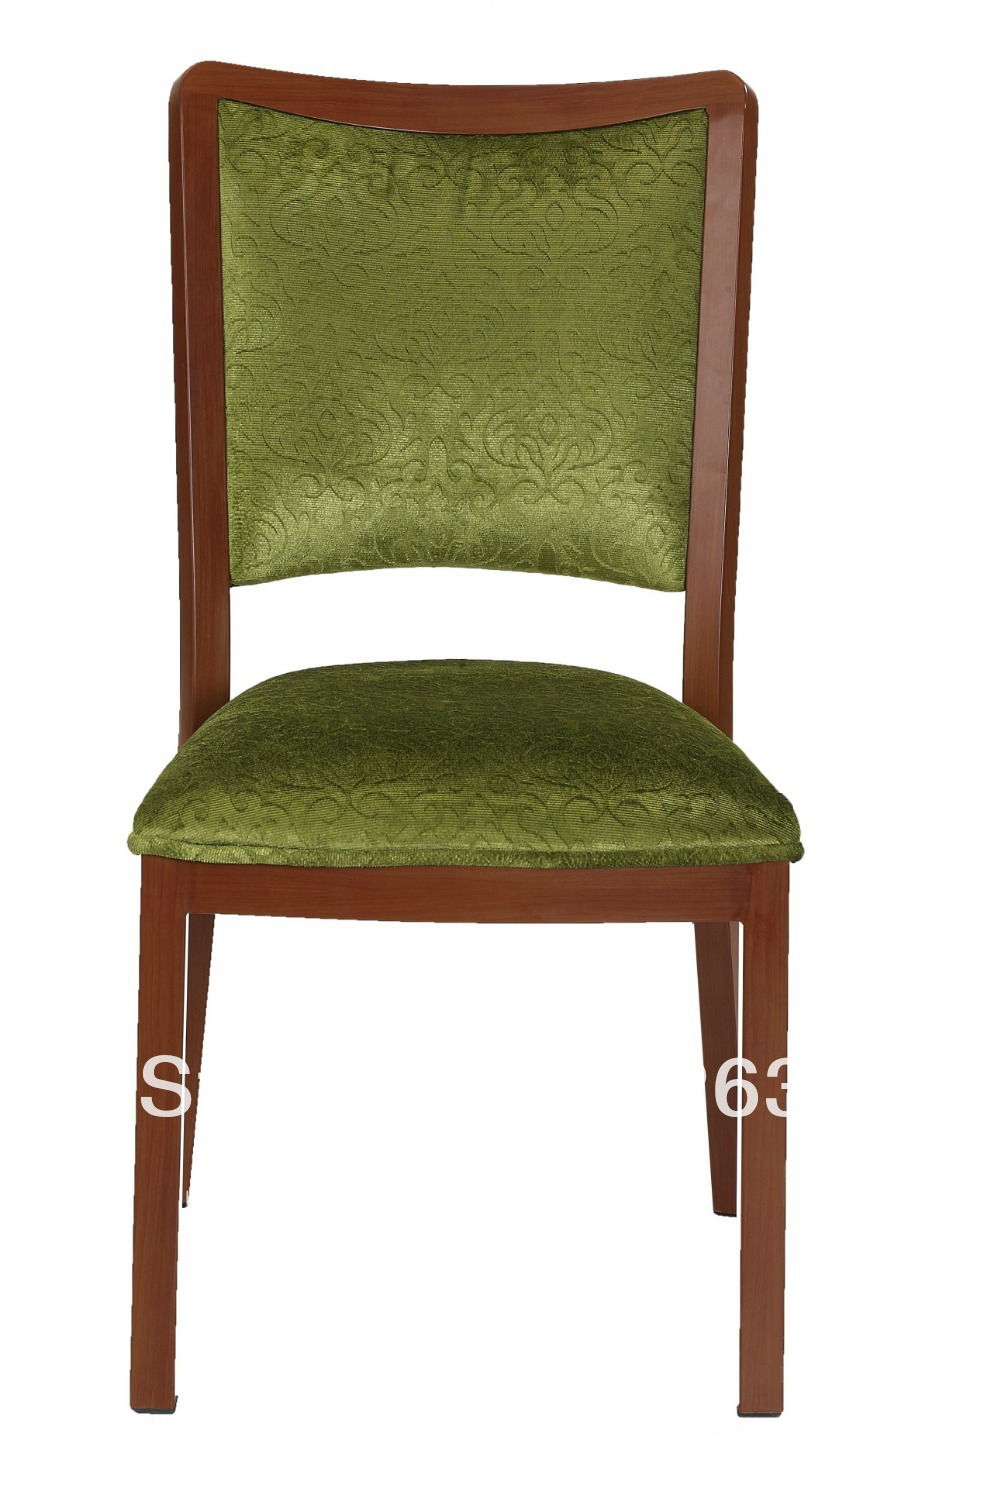 Us 255 0 Stackable Wood Grain Aluminum Banquet Chair Heavy Duty Fabric With High Rub Resistance Comfortable In Hotel Chairs From Furniture On